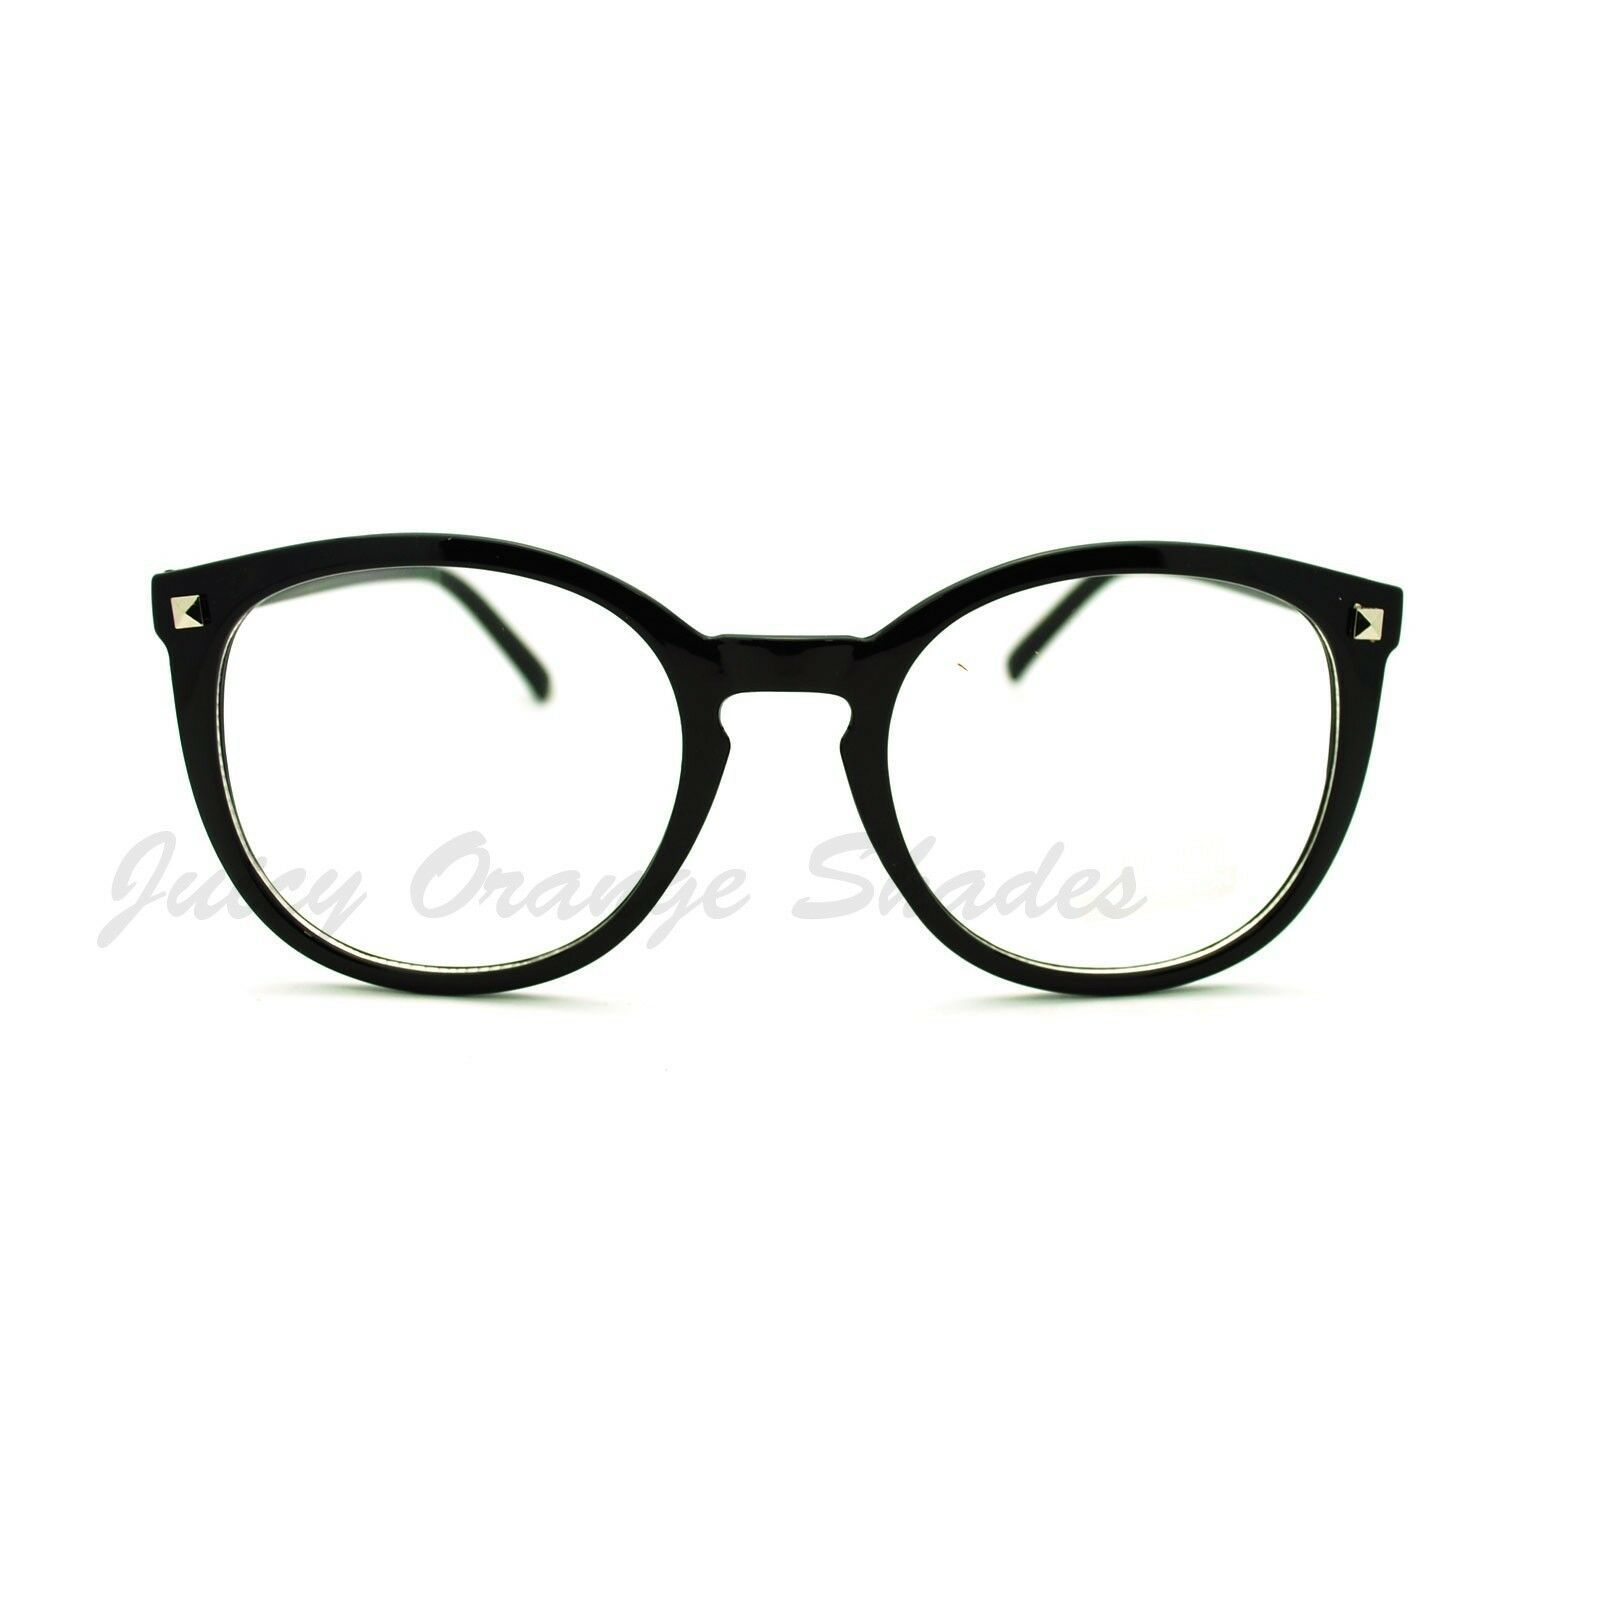 Women's Fashion Glasses Cute Round Clear Lens Eyeglasses